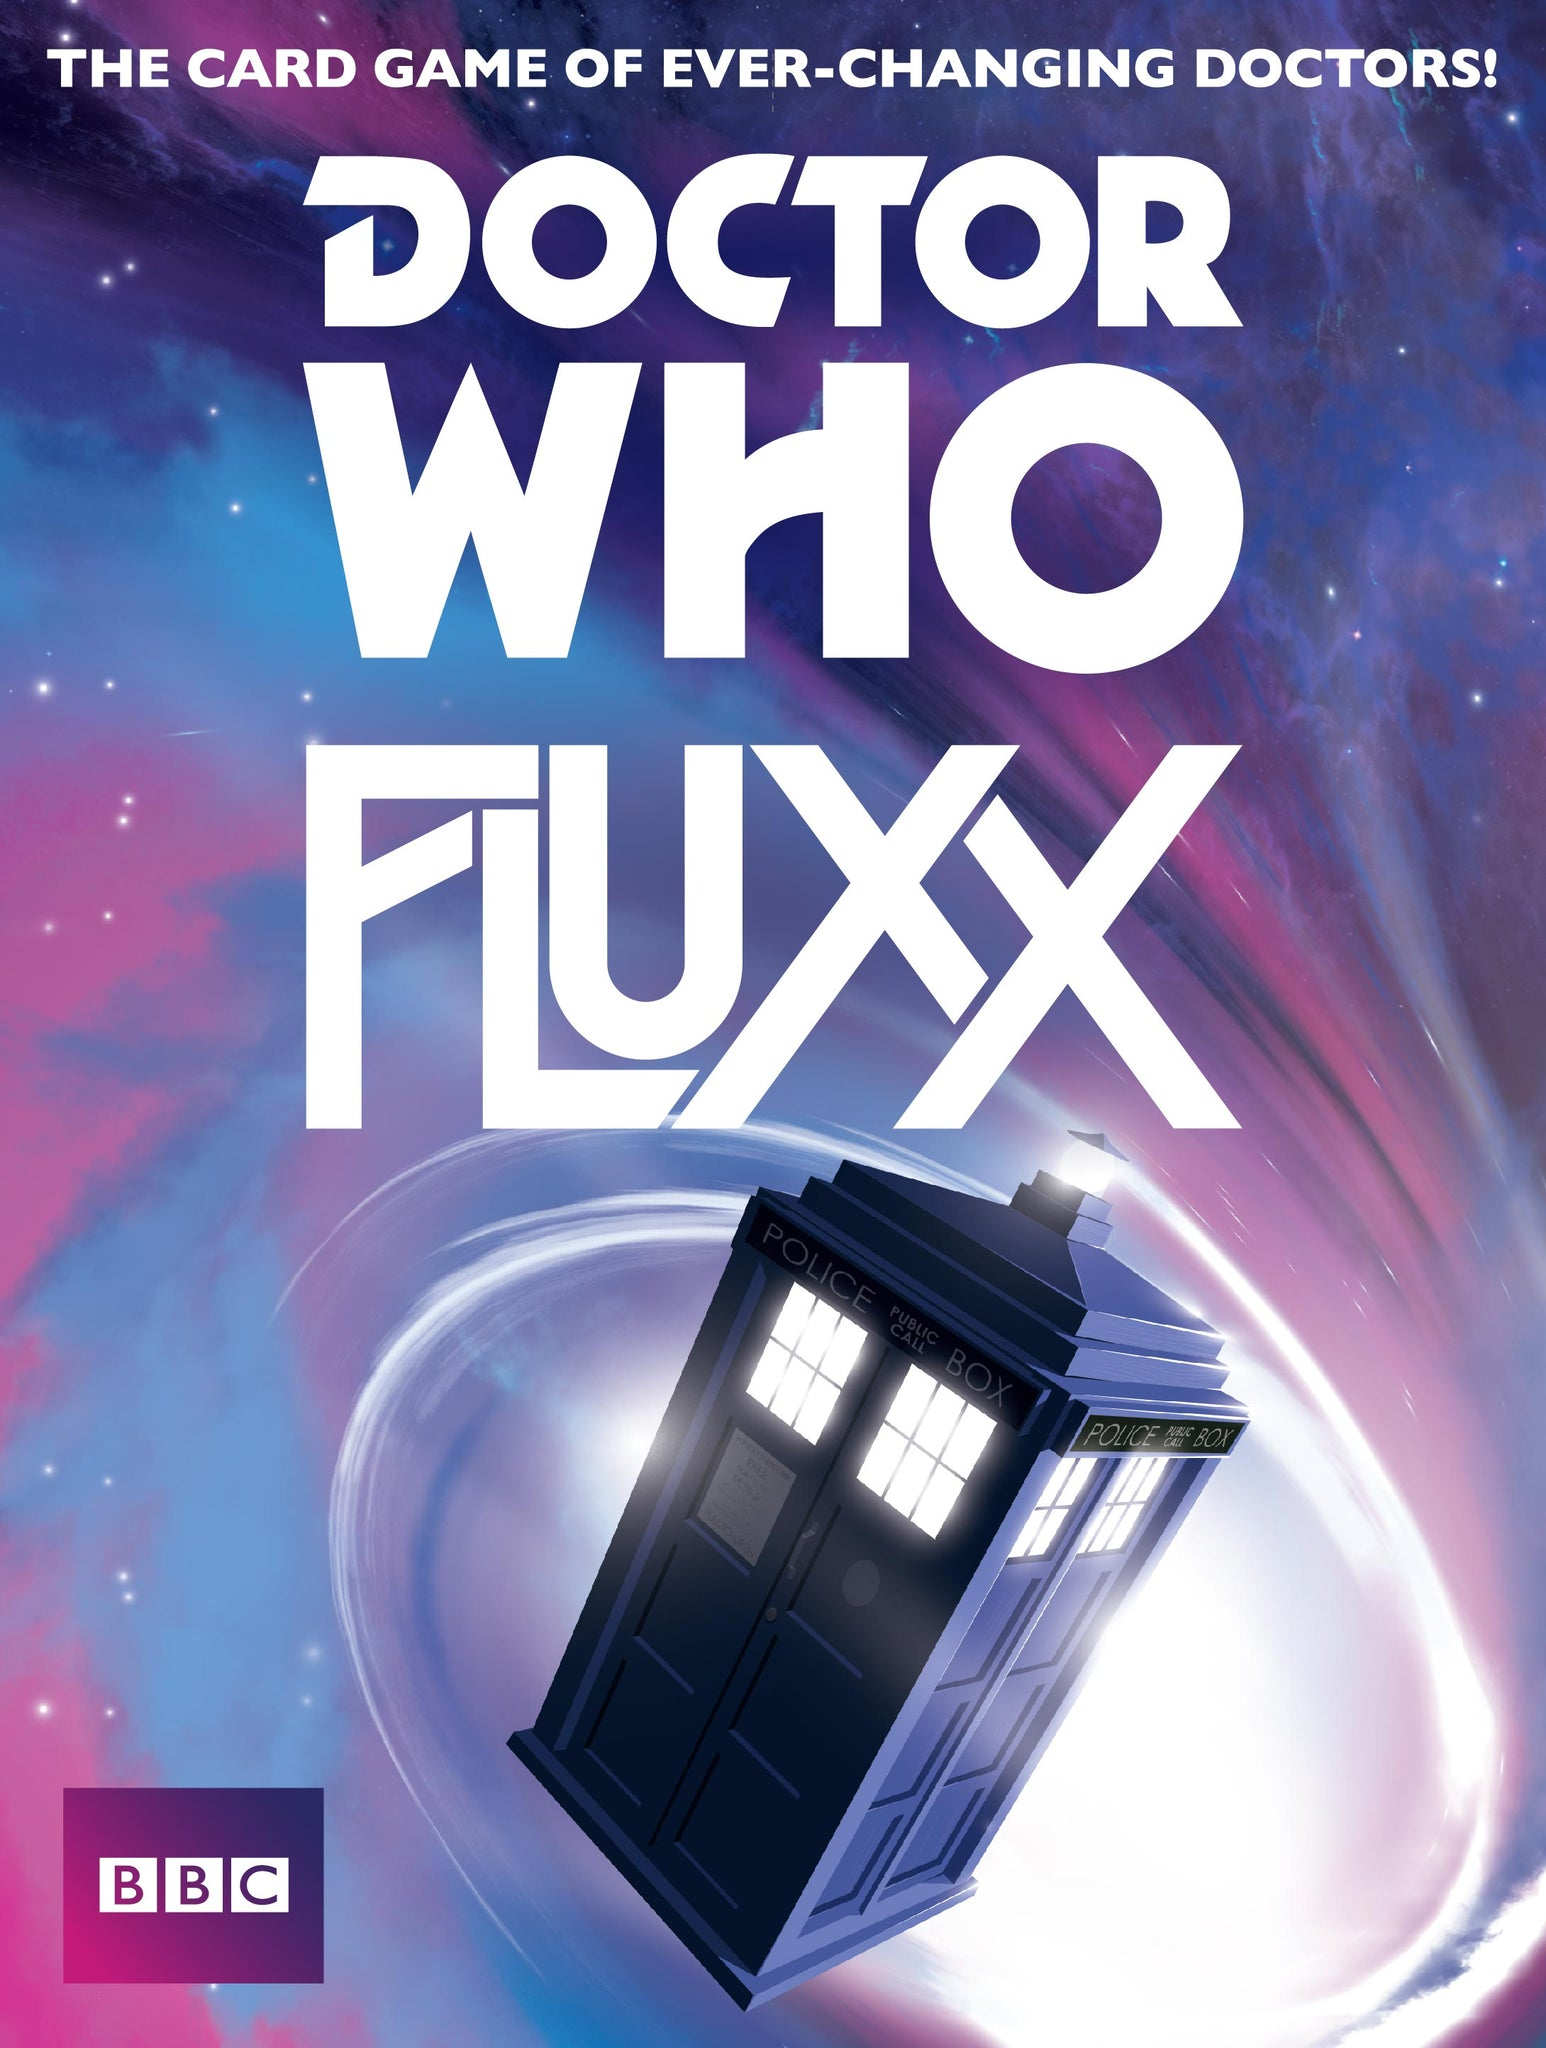 Doctor Who FLUXX Game Picture